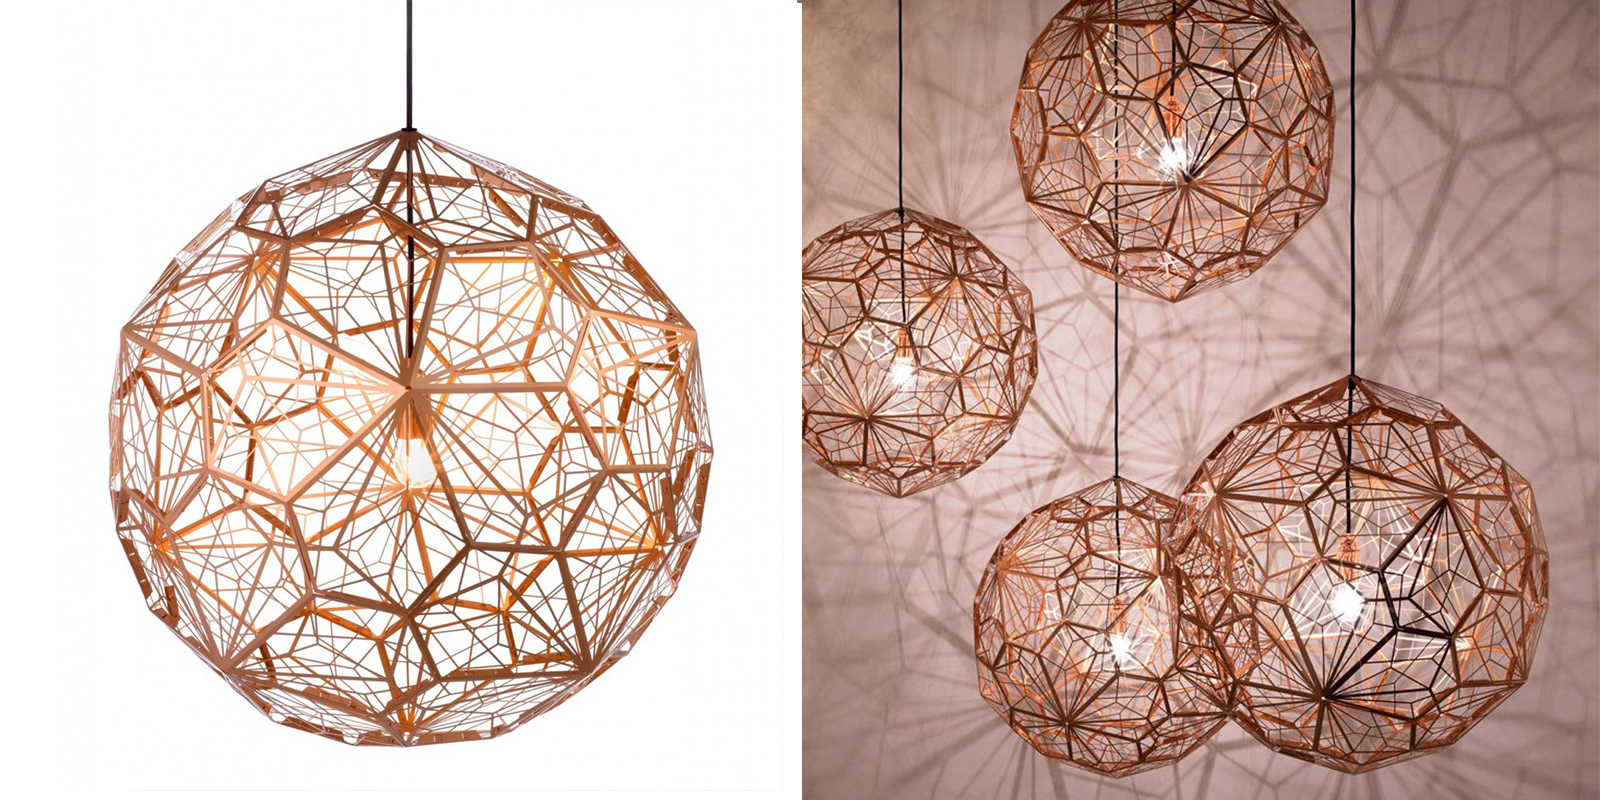 OCT Industrial Diamond Ball Light Fixture